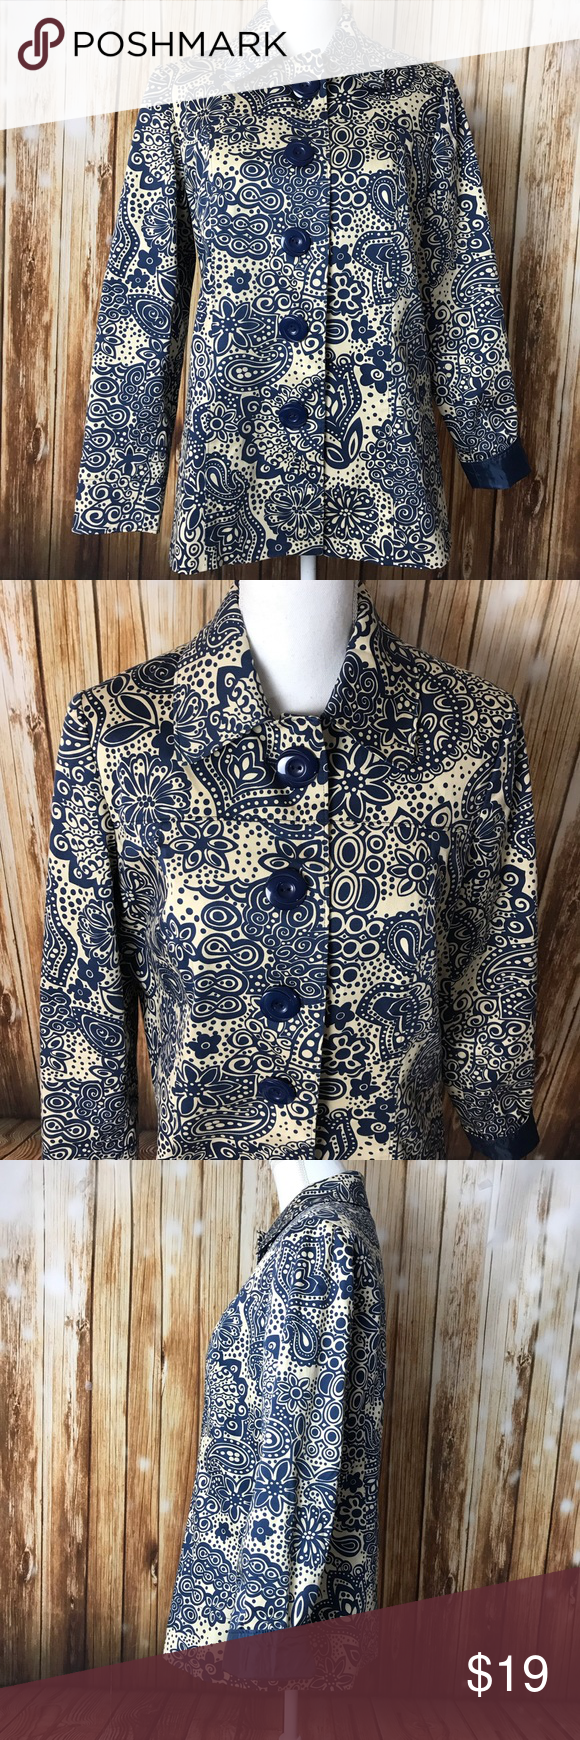 Blue cream patterned jacket big buttons funky Requirements